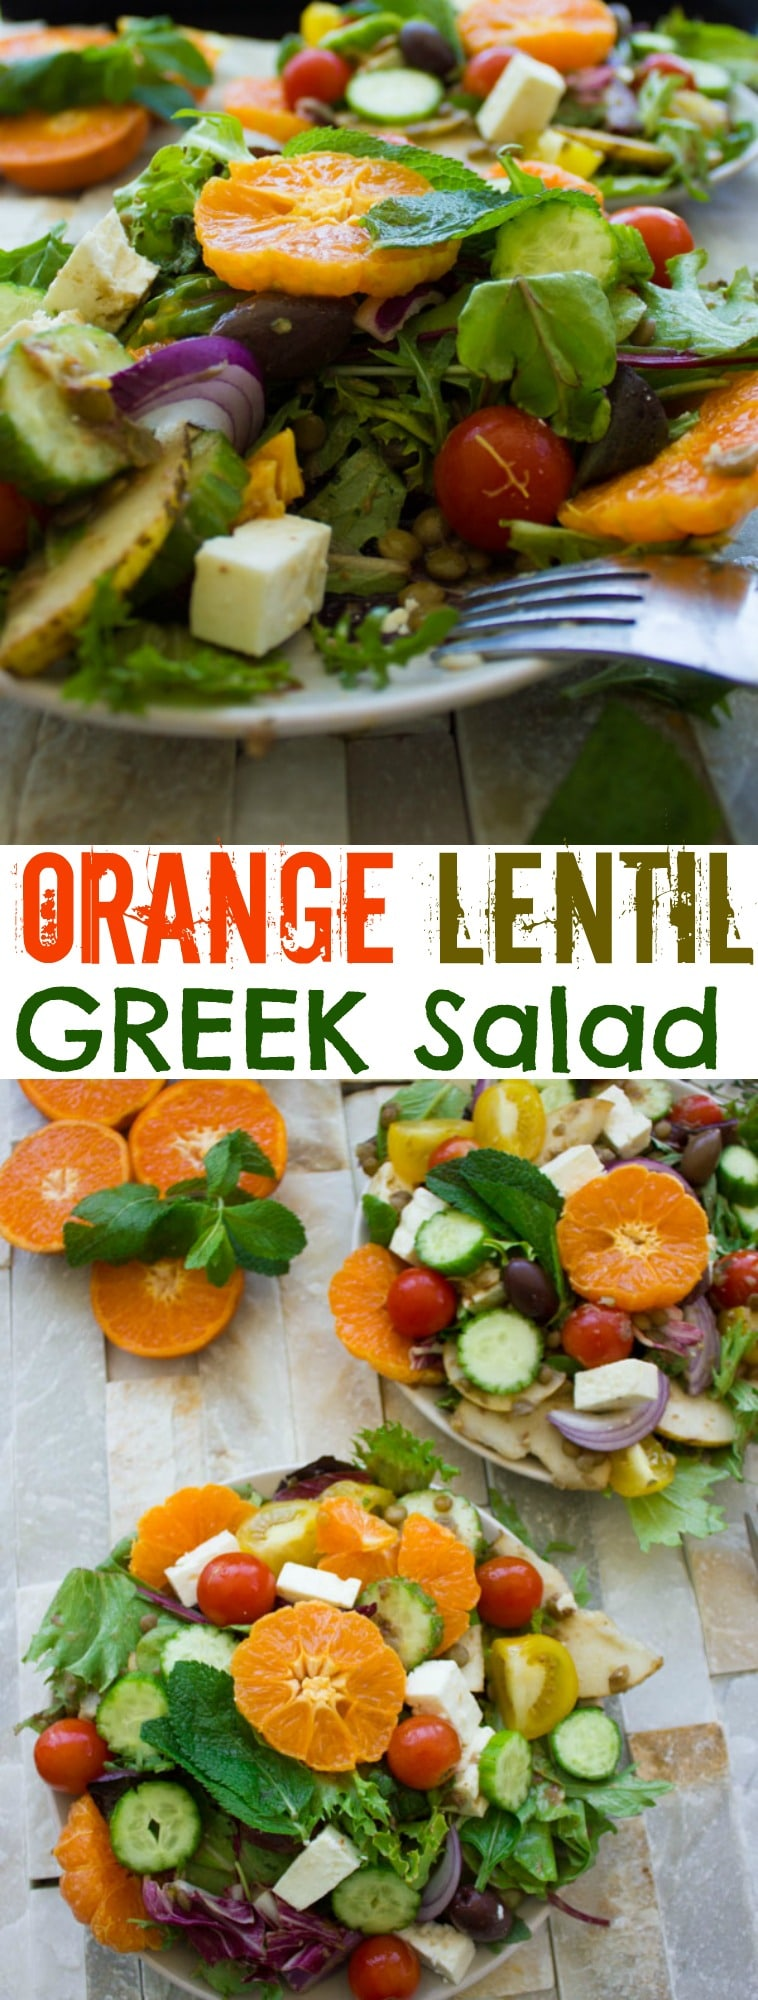 Orange Lentil Greek Salad | With sliced oranges, pears, fresh mint and green lentils, this Orange Lentil Greek Salad is a modern and fruity twist on the salad classic. Tossed with a zesty Mediterranean Orange Dressing, this healthy salad makes for a filling main course. Skip the feta to make this a vegan salad. #saladrecipes, #vegan, #glutenfree, #realfood, #healthy, #cleaneating